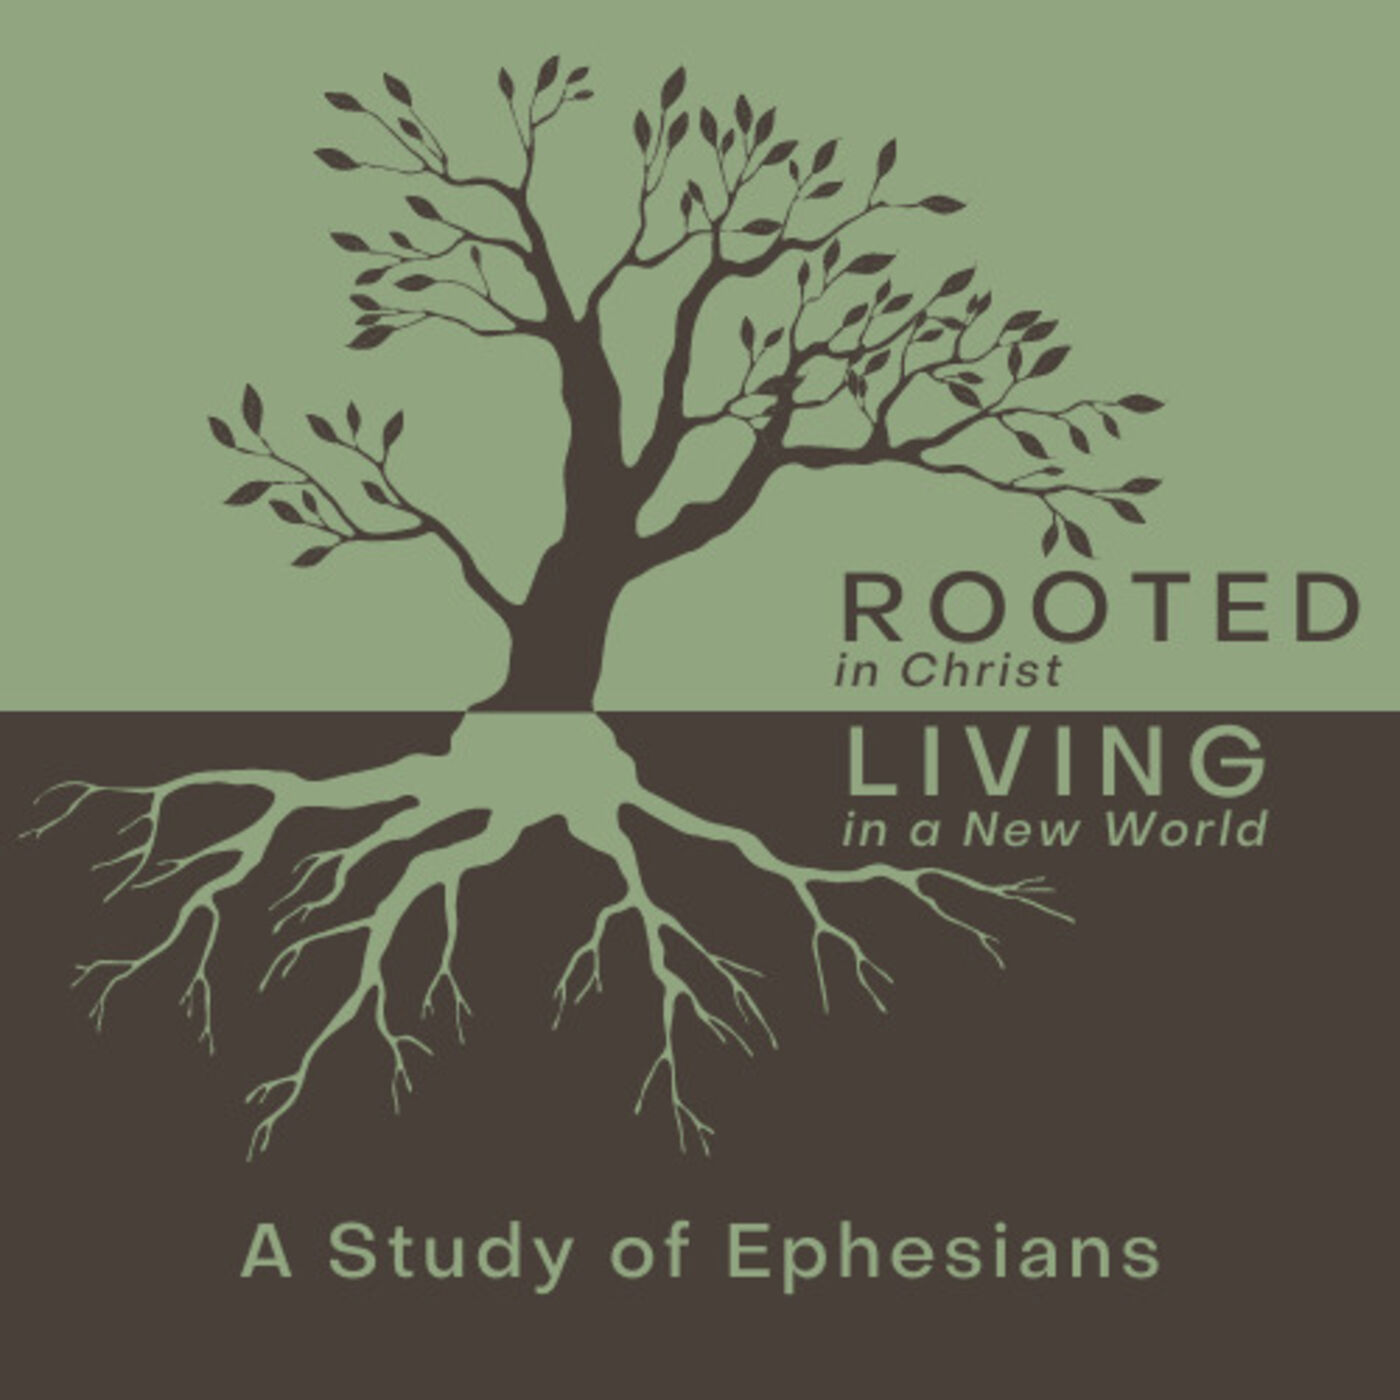 Rooted in Christ, Living in a New World - Putting On The New Self